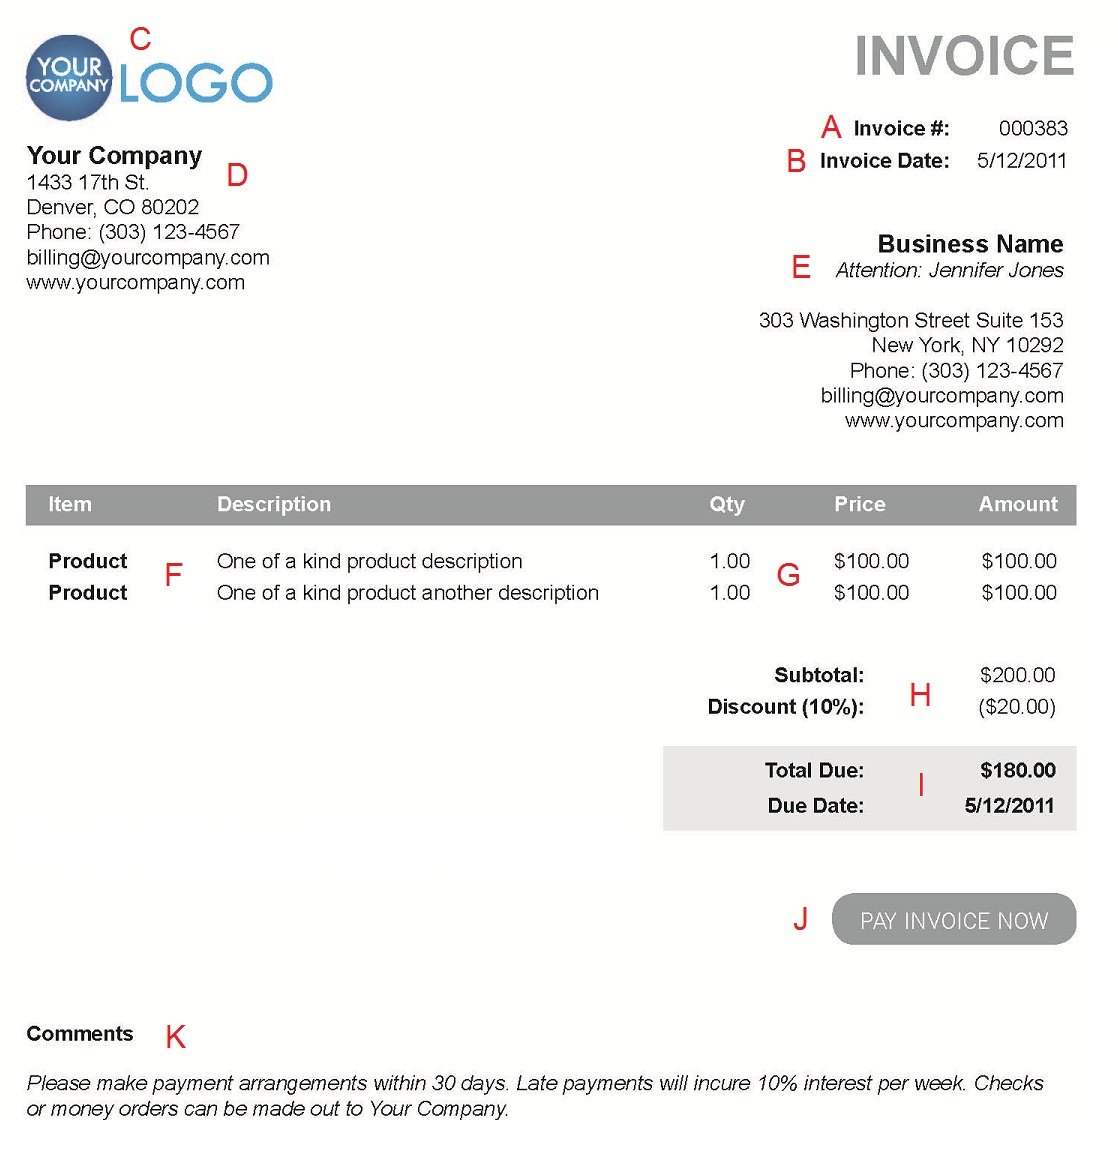 Coachoutletonlineplusus  Inspiring The  Different Sections Of An Electronic Payment Invoice With Magnificent A  With Lovely Best Invoice Templates Also Sample Of Commercial Invoice In Addition Samples Of Proforma Invoice And Sample Of Service Invoice As Well As  Mazda  Invoice Additionally Credit Invoice Definition From Paysimplecom With Coachoutletonlineplusus  Magnificent The  Different Sections Of An Electronic Payment Invoice With Lovely A  And Inspiring Best Invoice Templates Also Sample Of Commercial Invoice In Addition Samples Of Proforma Invoice From Paysimplecom